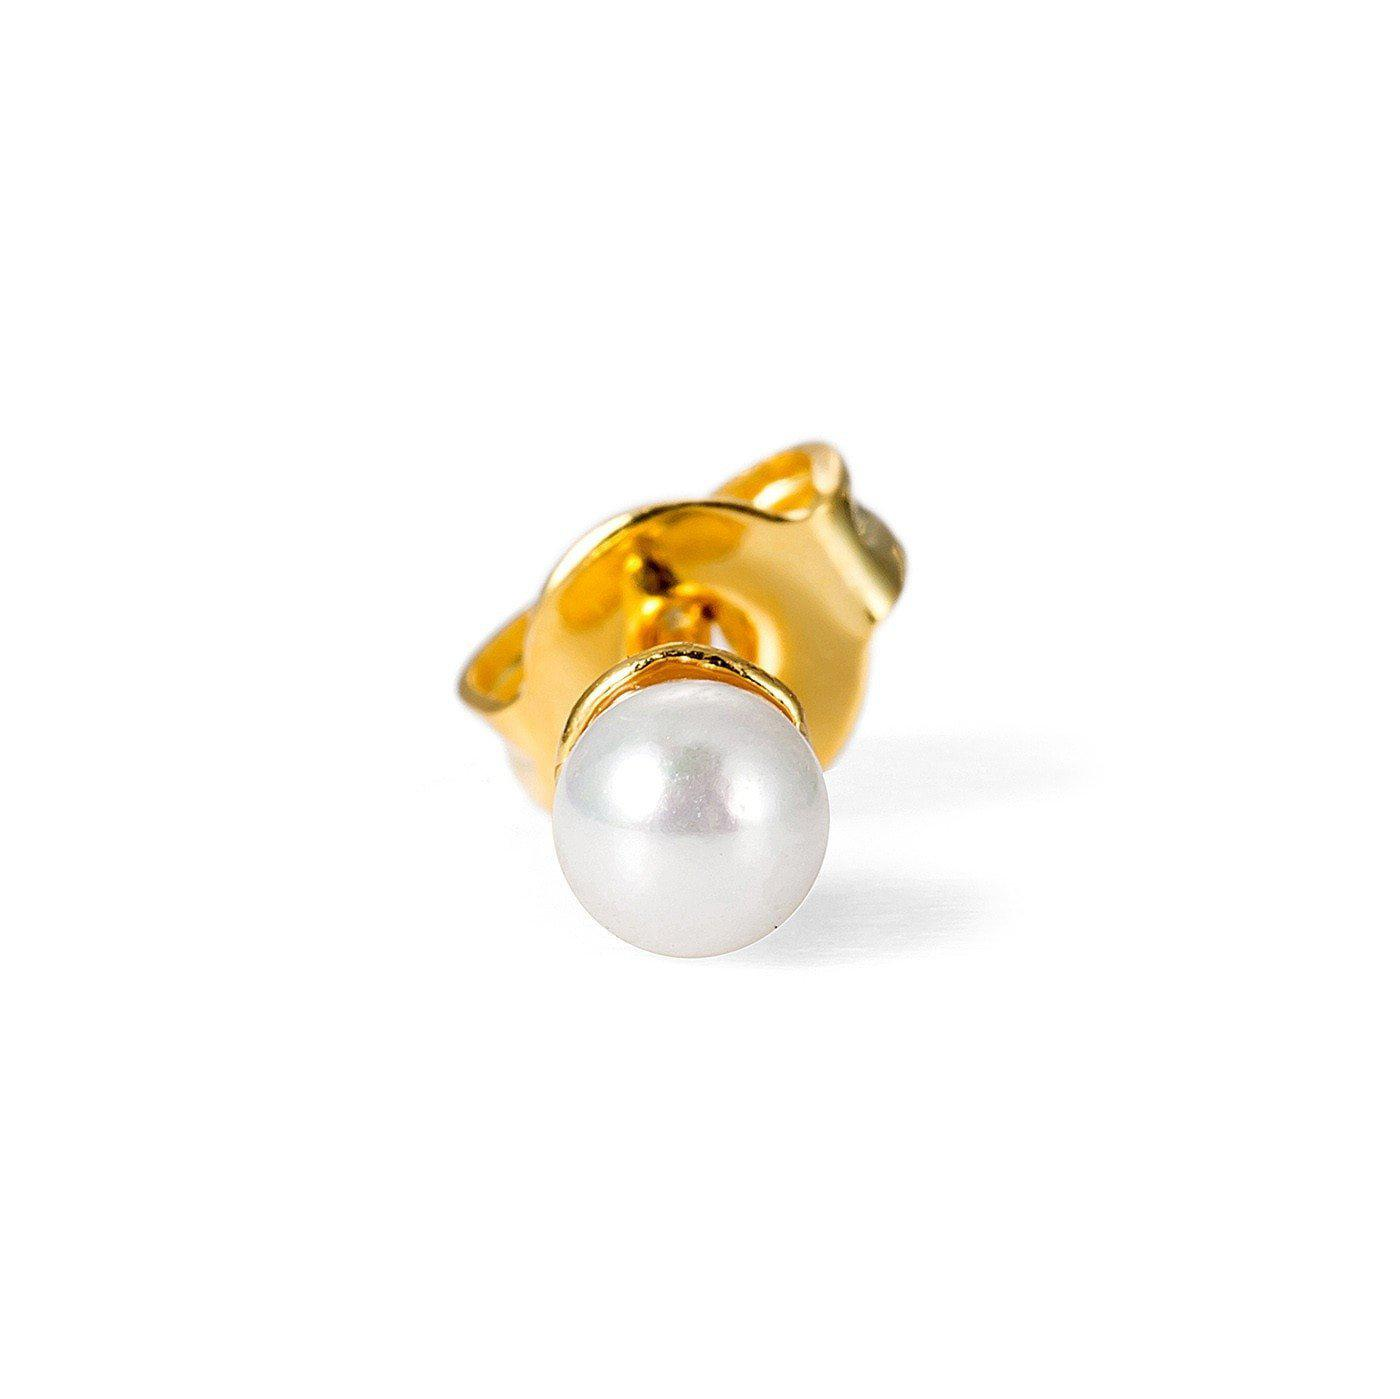 Tiny Pearl Charm Nose Pin-Blinglane